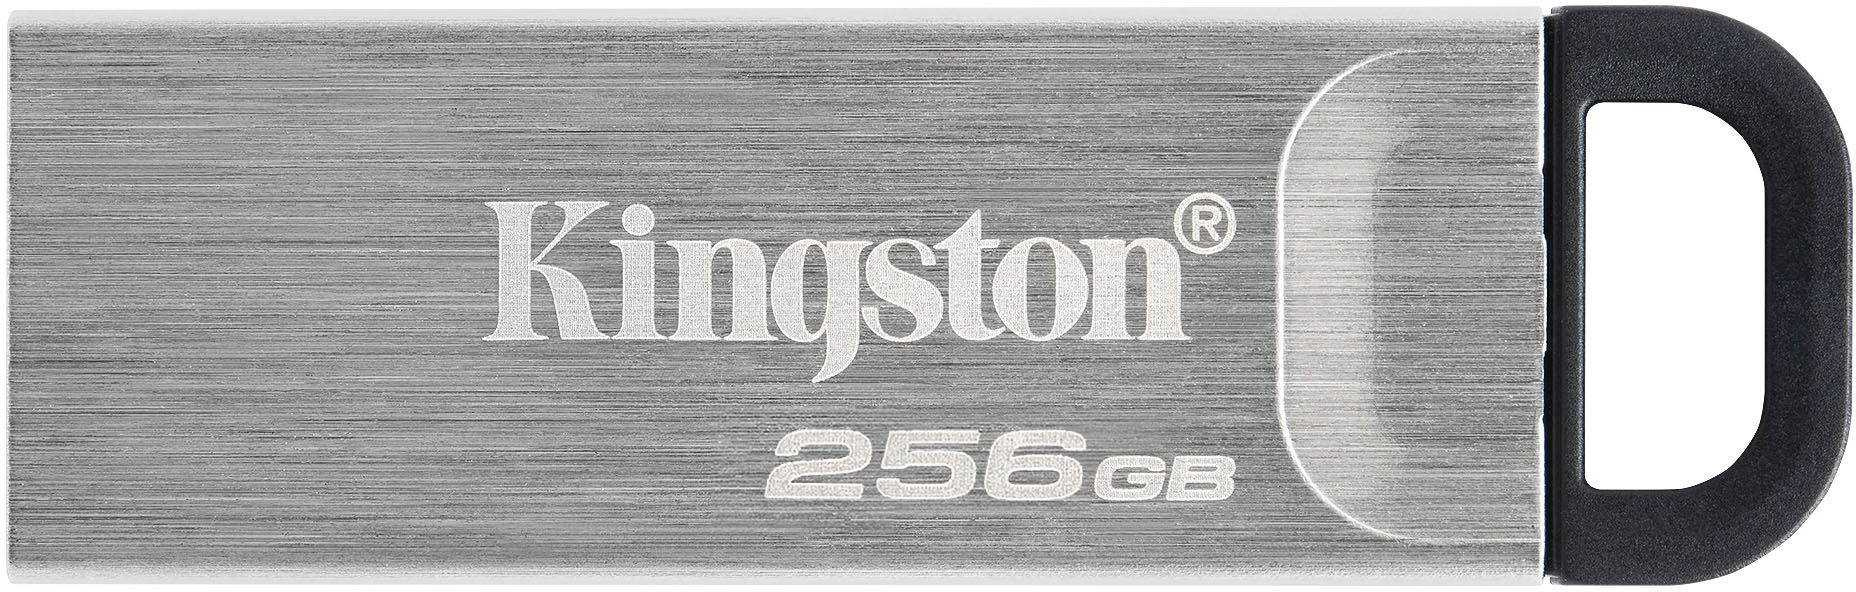 Флешка Kingston Kyson DTKN 256Gb Серебристая